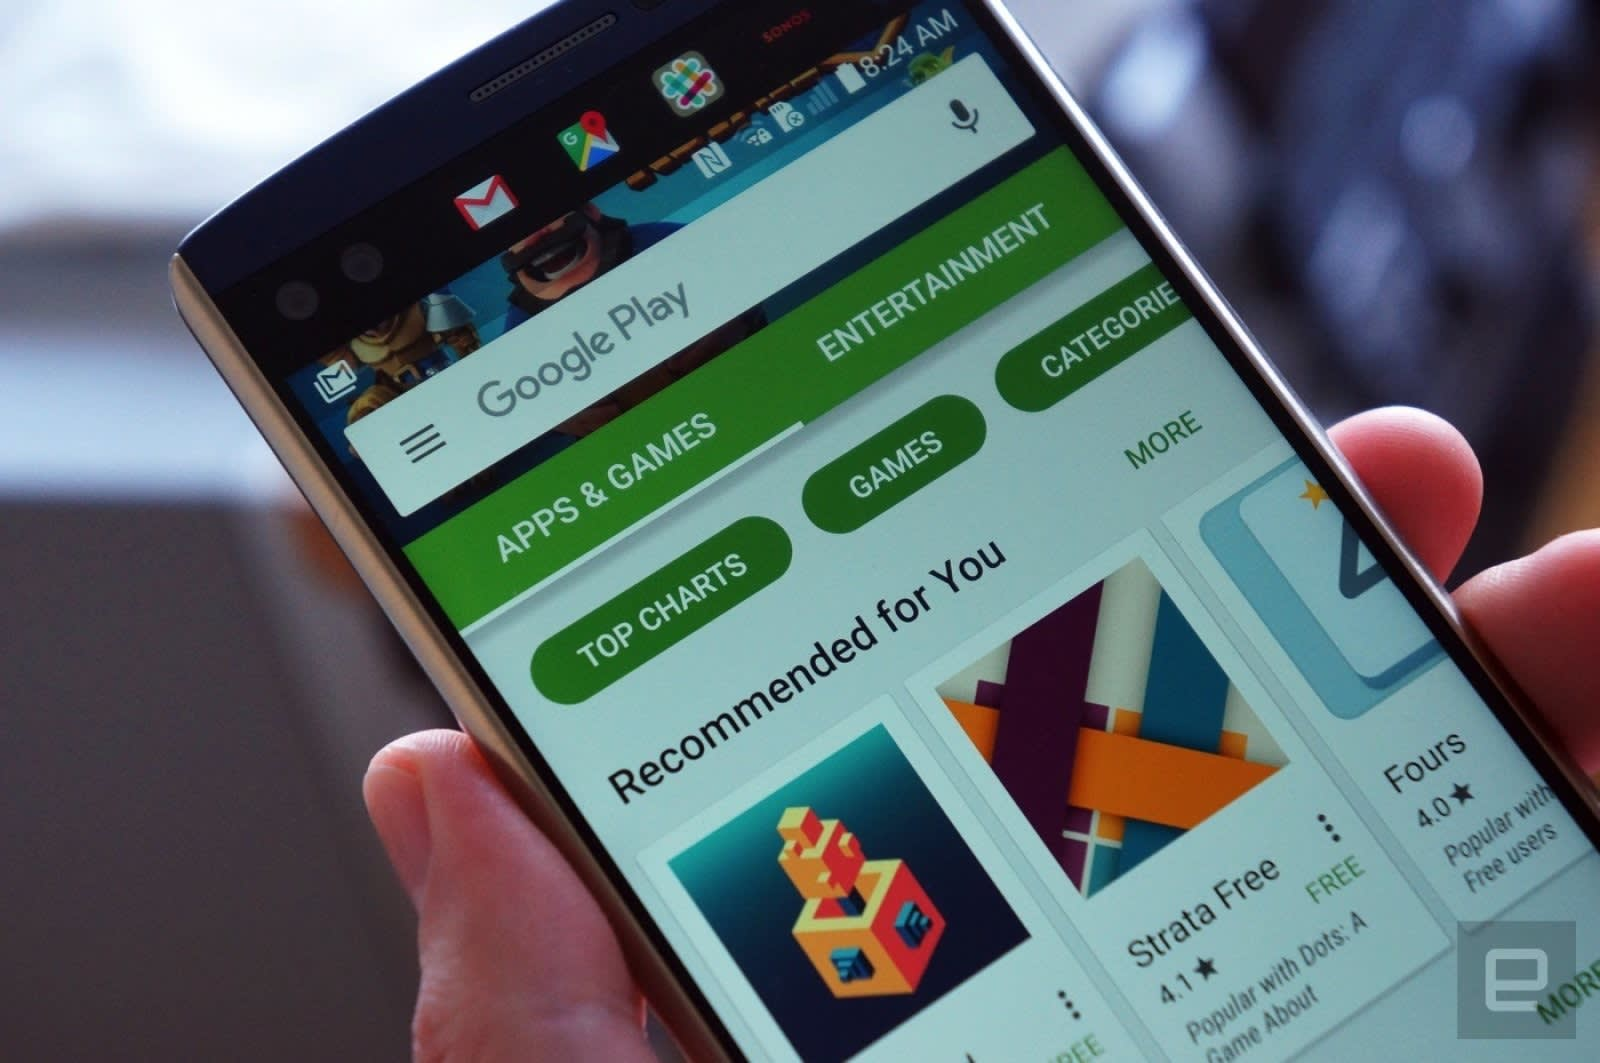 Massive ad scam stole millions through Android apps